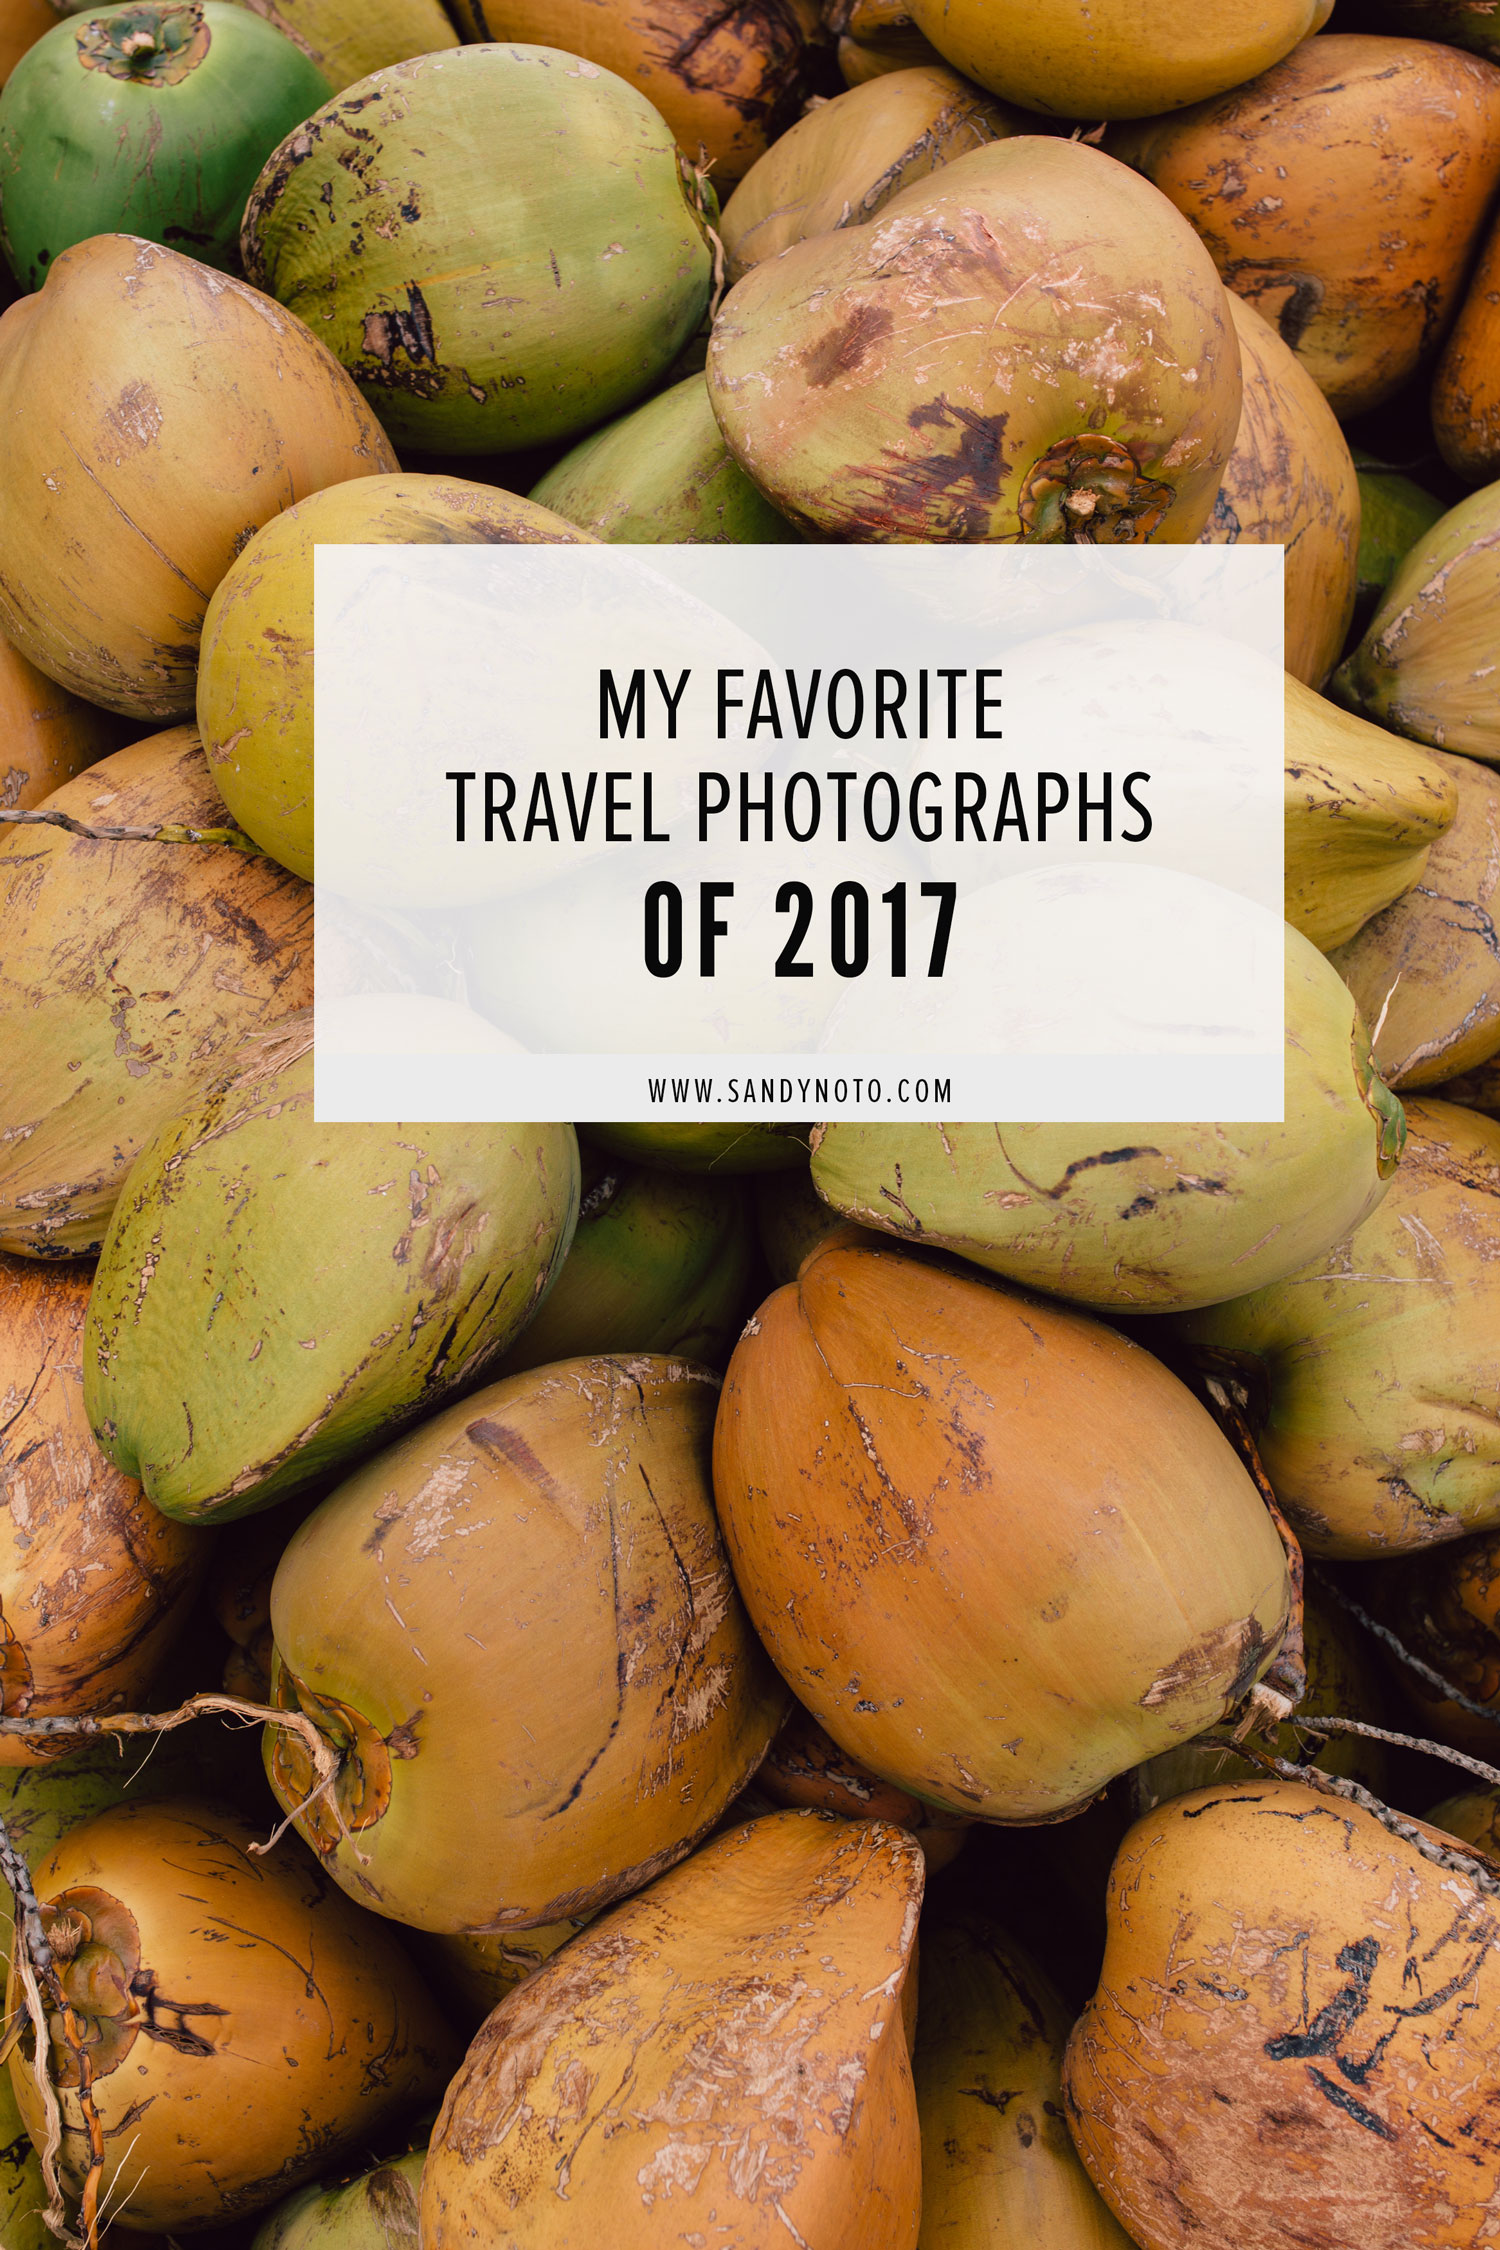 A few favorite travel photos from 2017